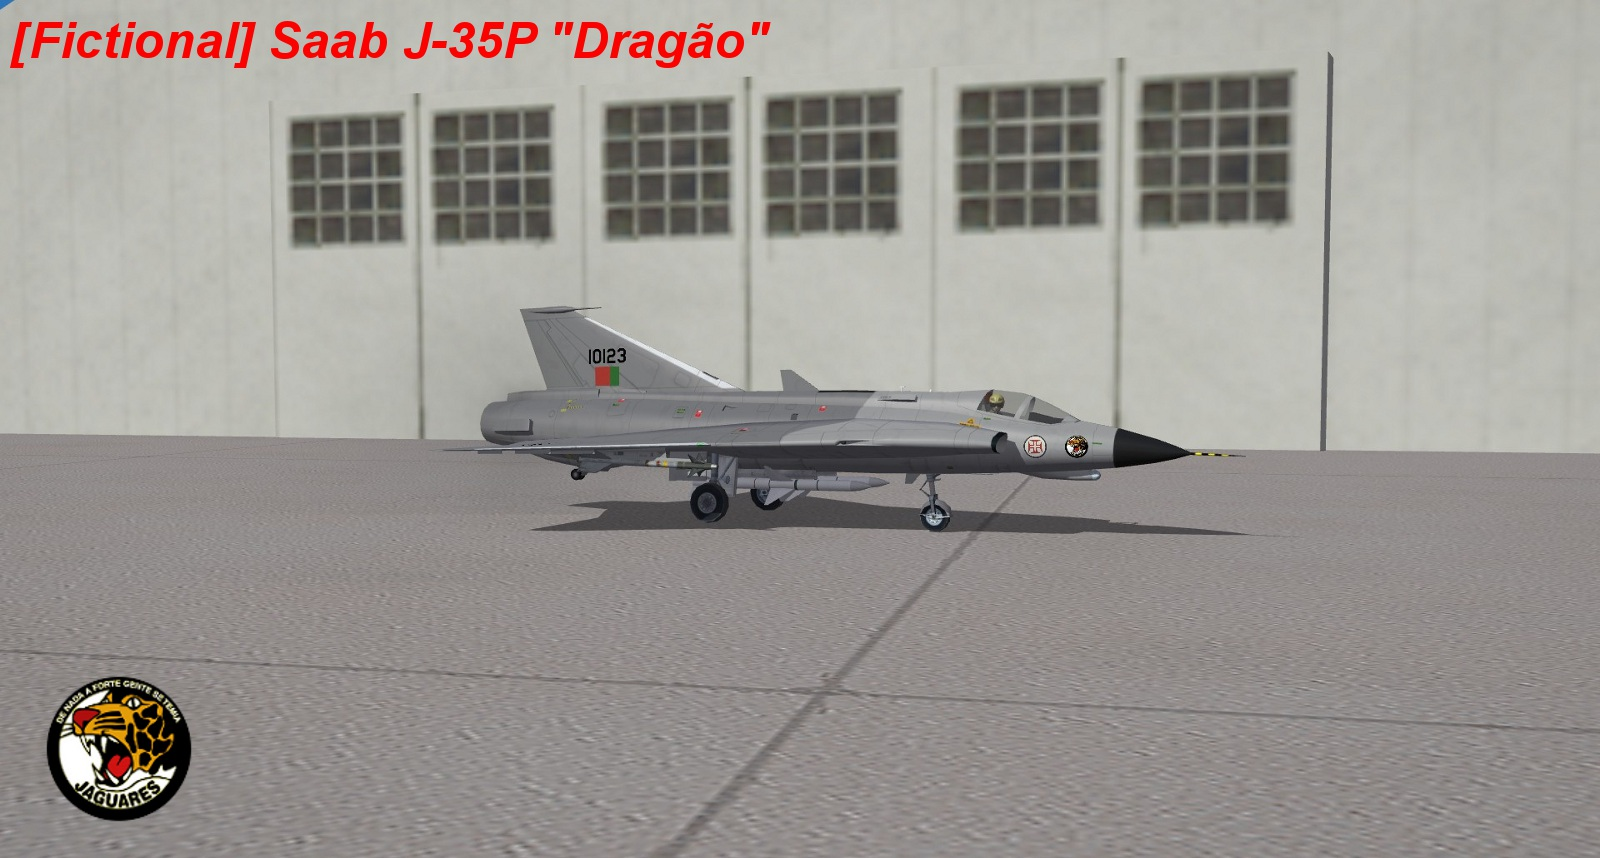 [Fictional] SAAB J-35P Dragão (Dragon)